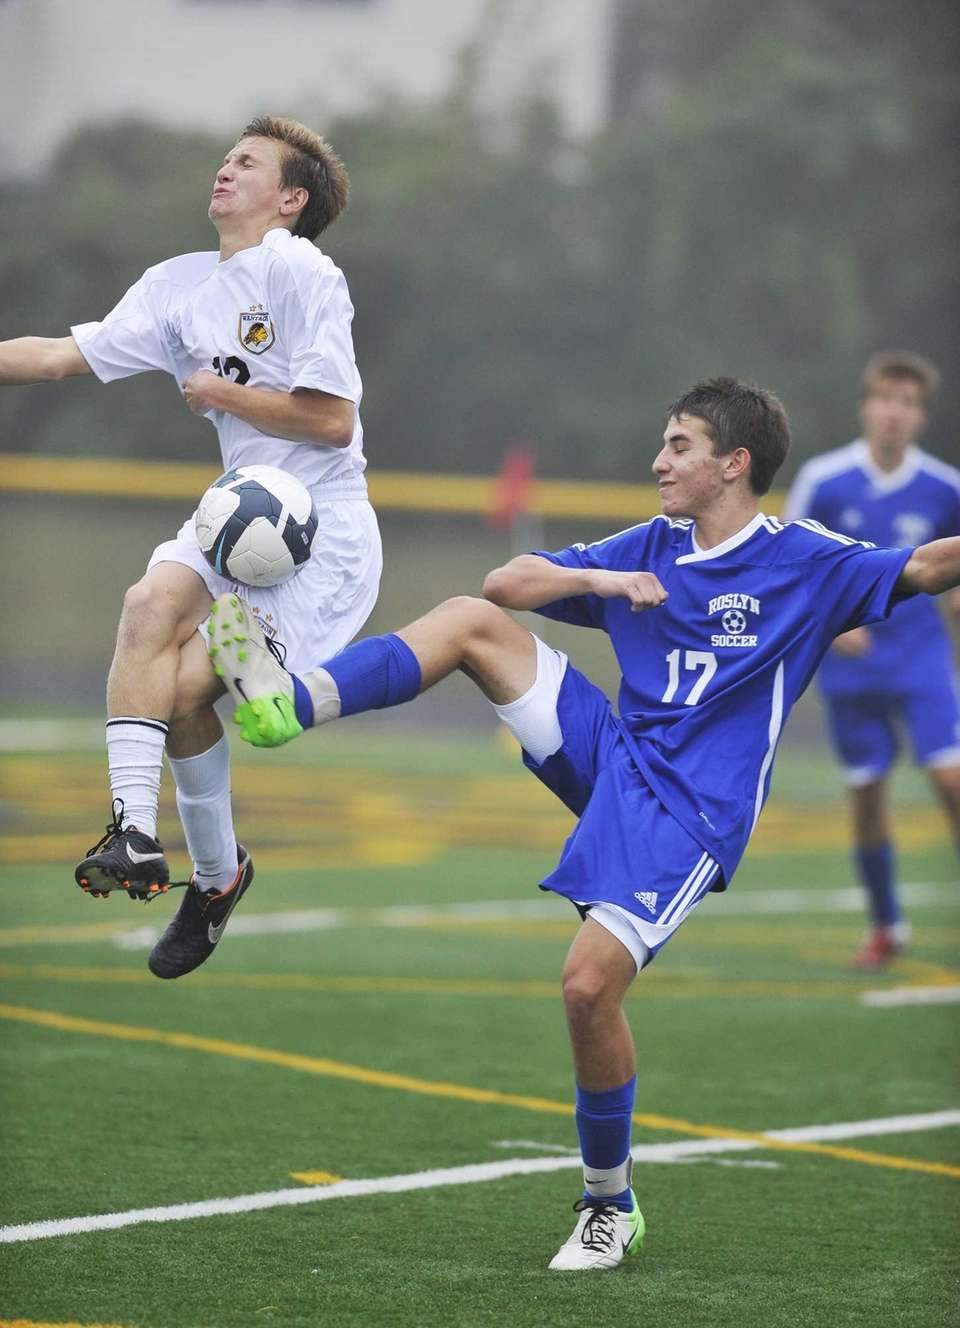 Roslyn's Kyle Galin kicks the ball past a